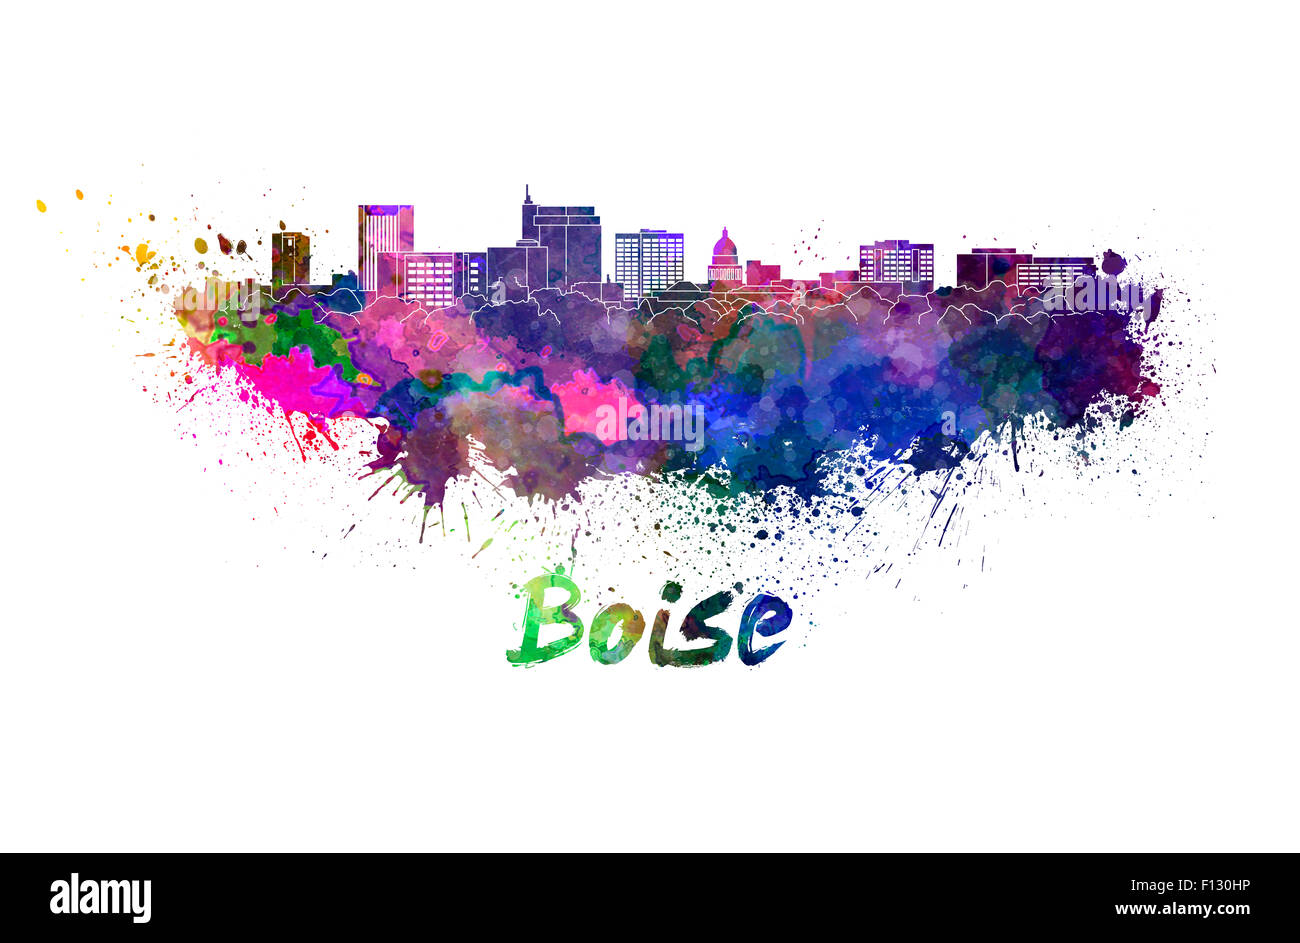 Boise skyline in watercolor splatters with clipping path - Stock Image